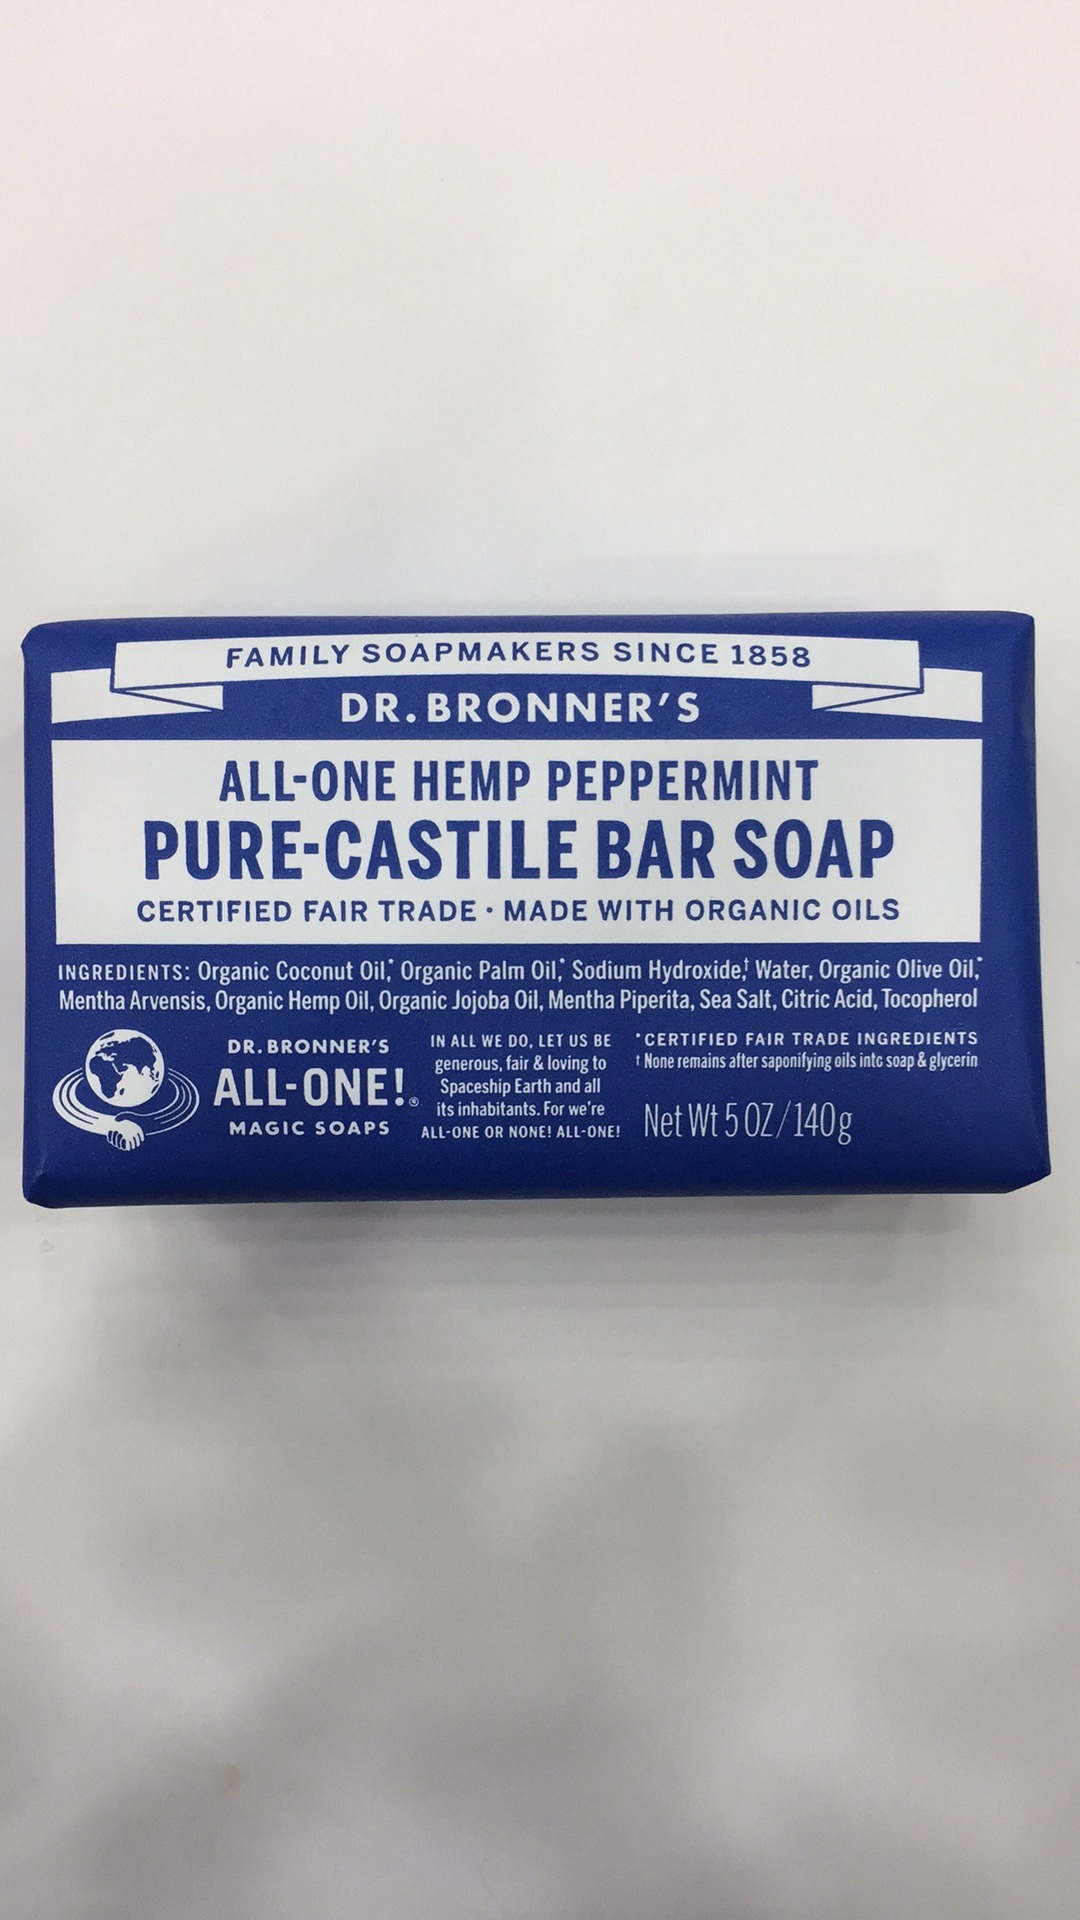 All-one Hemp Peppermint Pure-castile Bar Soap | The Natural